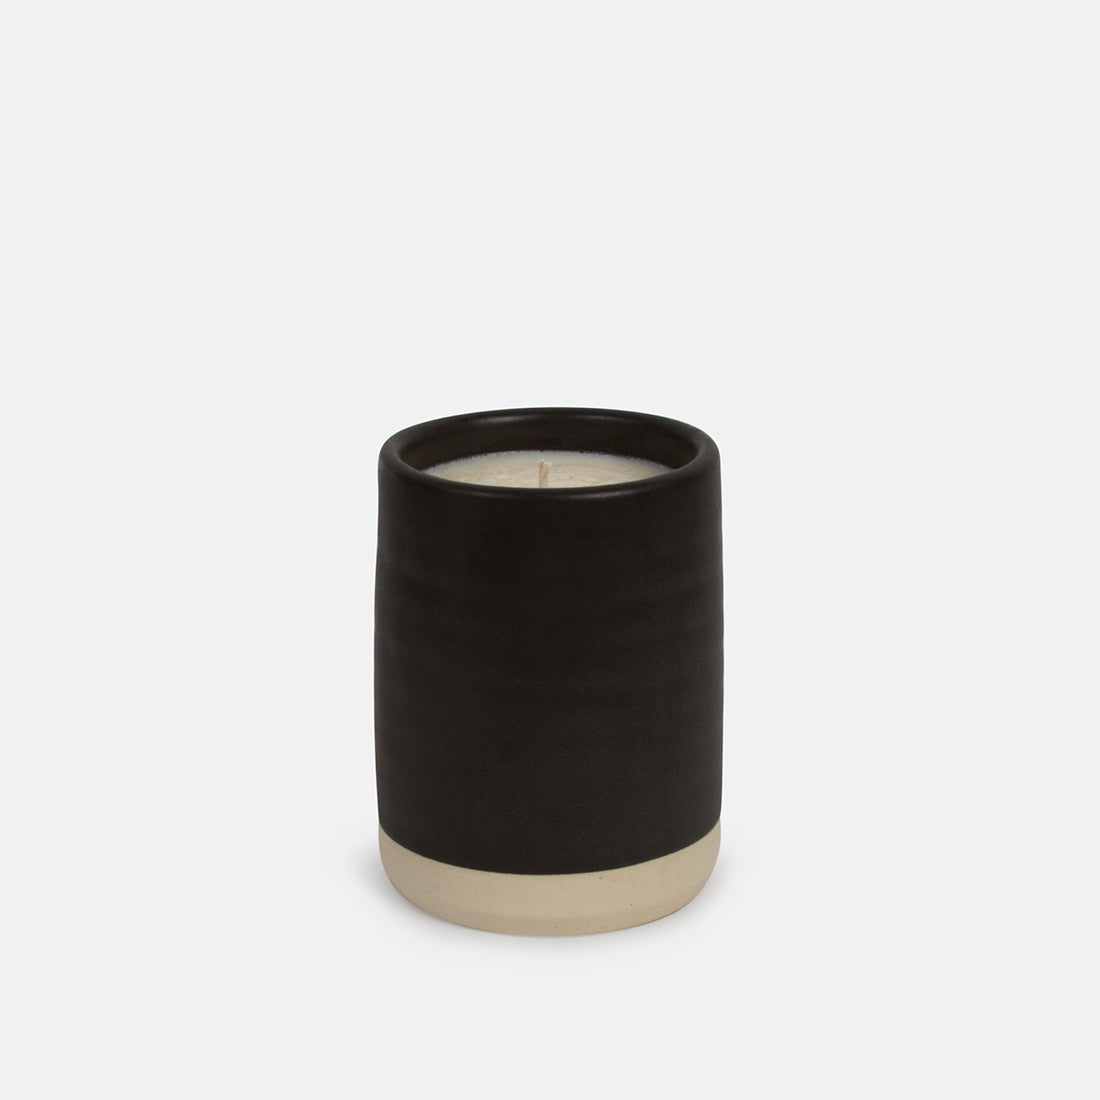 Big Sur Ceramic Candle